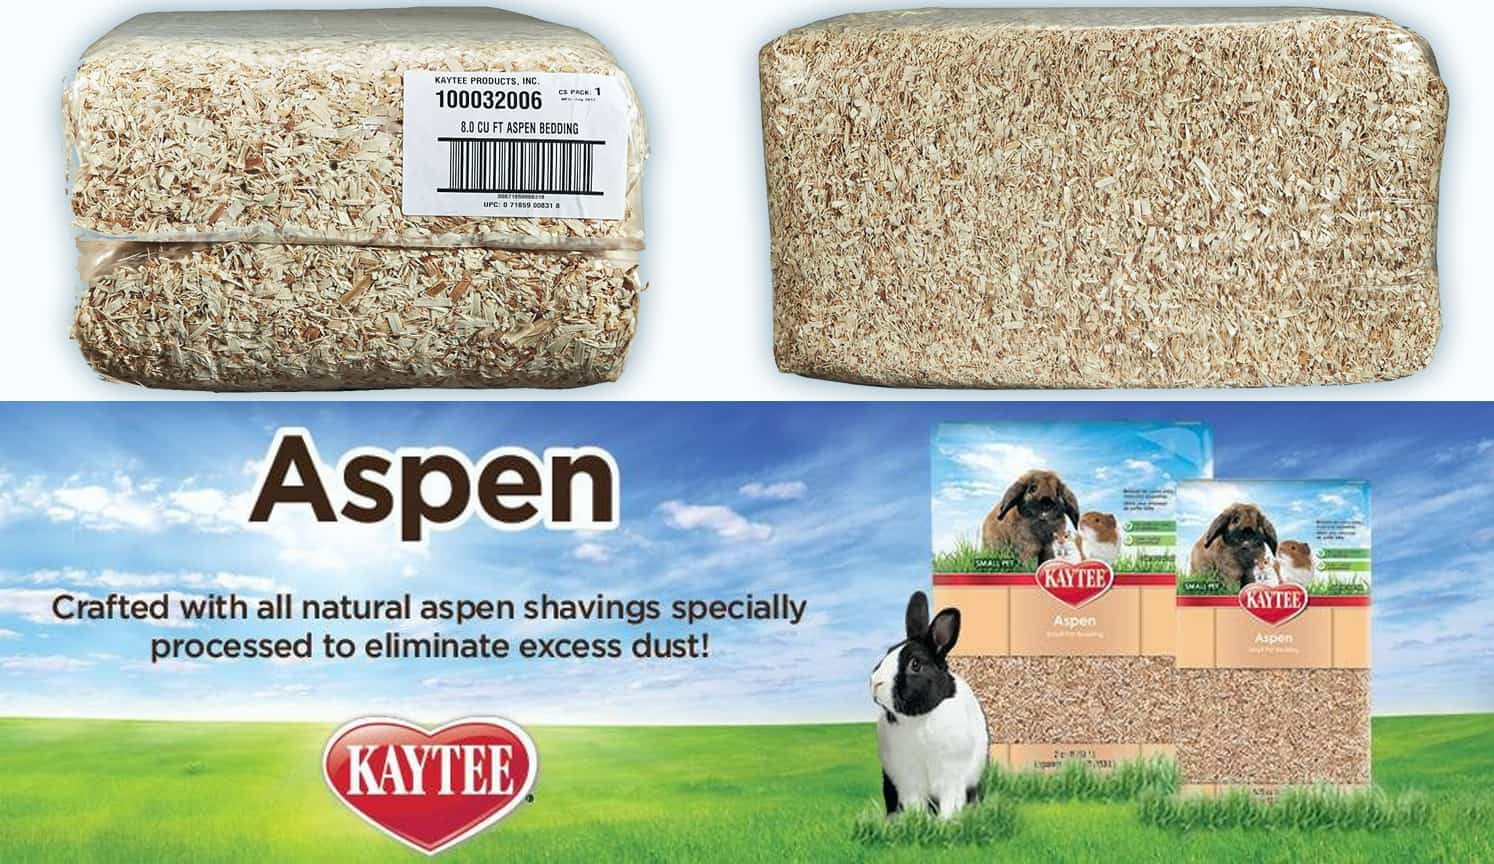 Aspen Pet Bedding as the third related product of the Best Rabbit Bedding